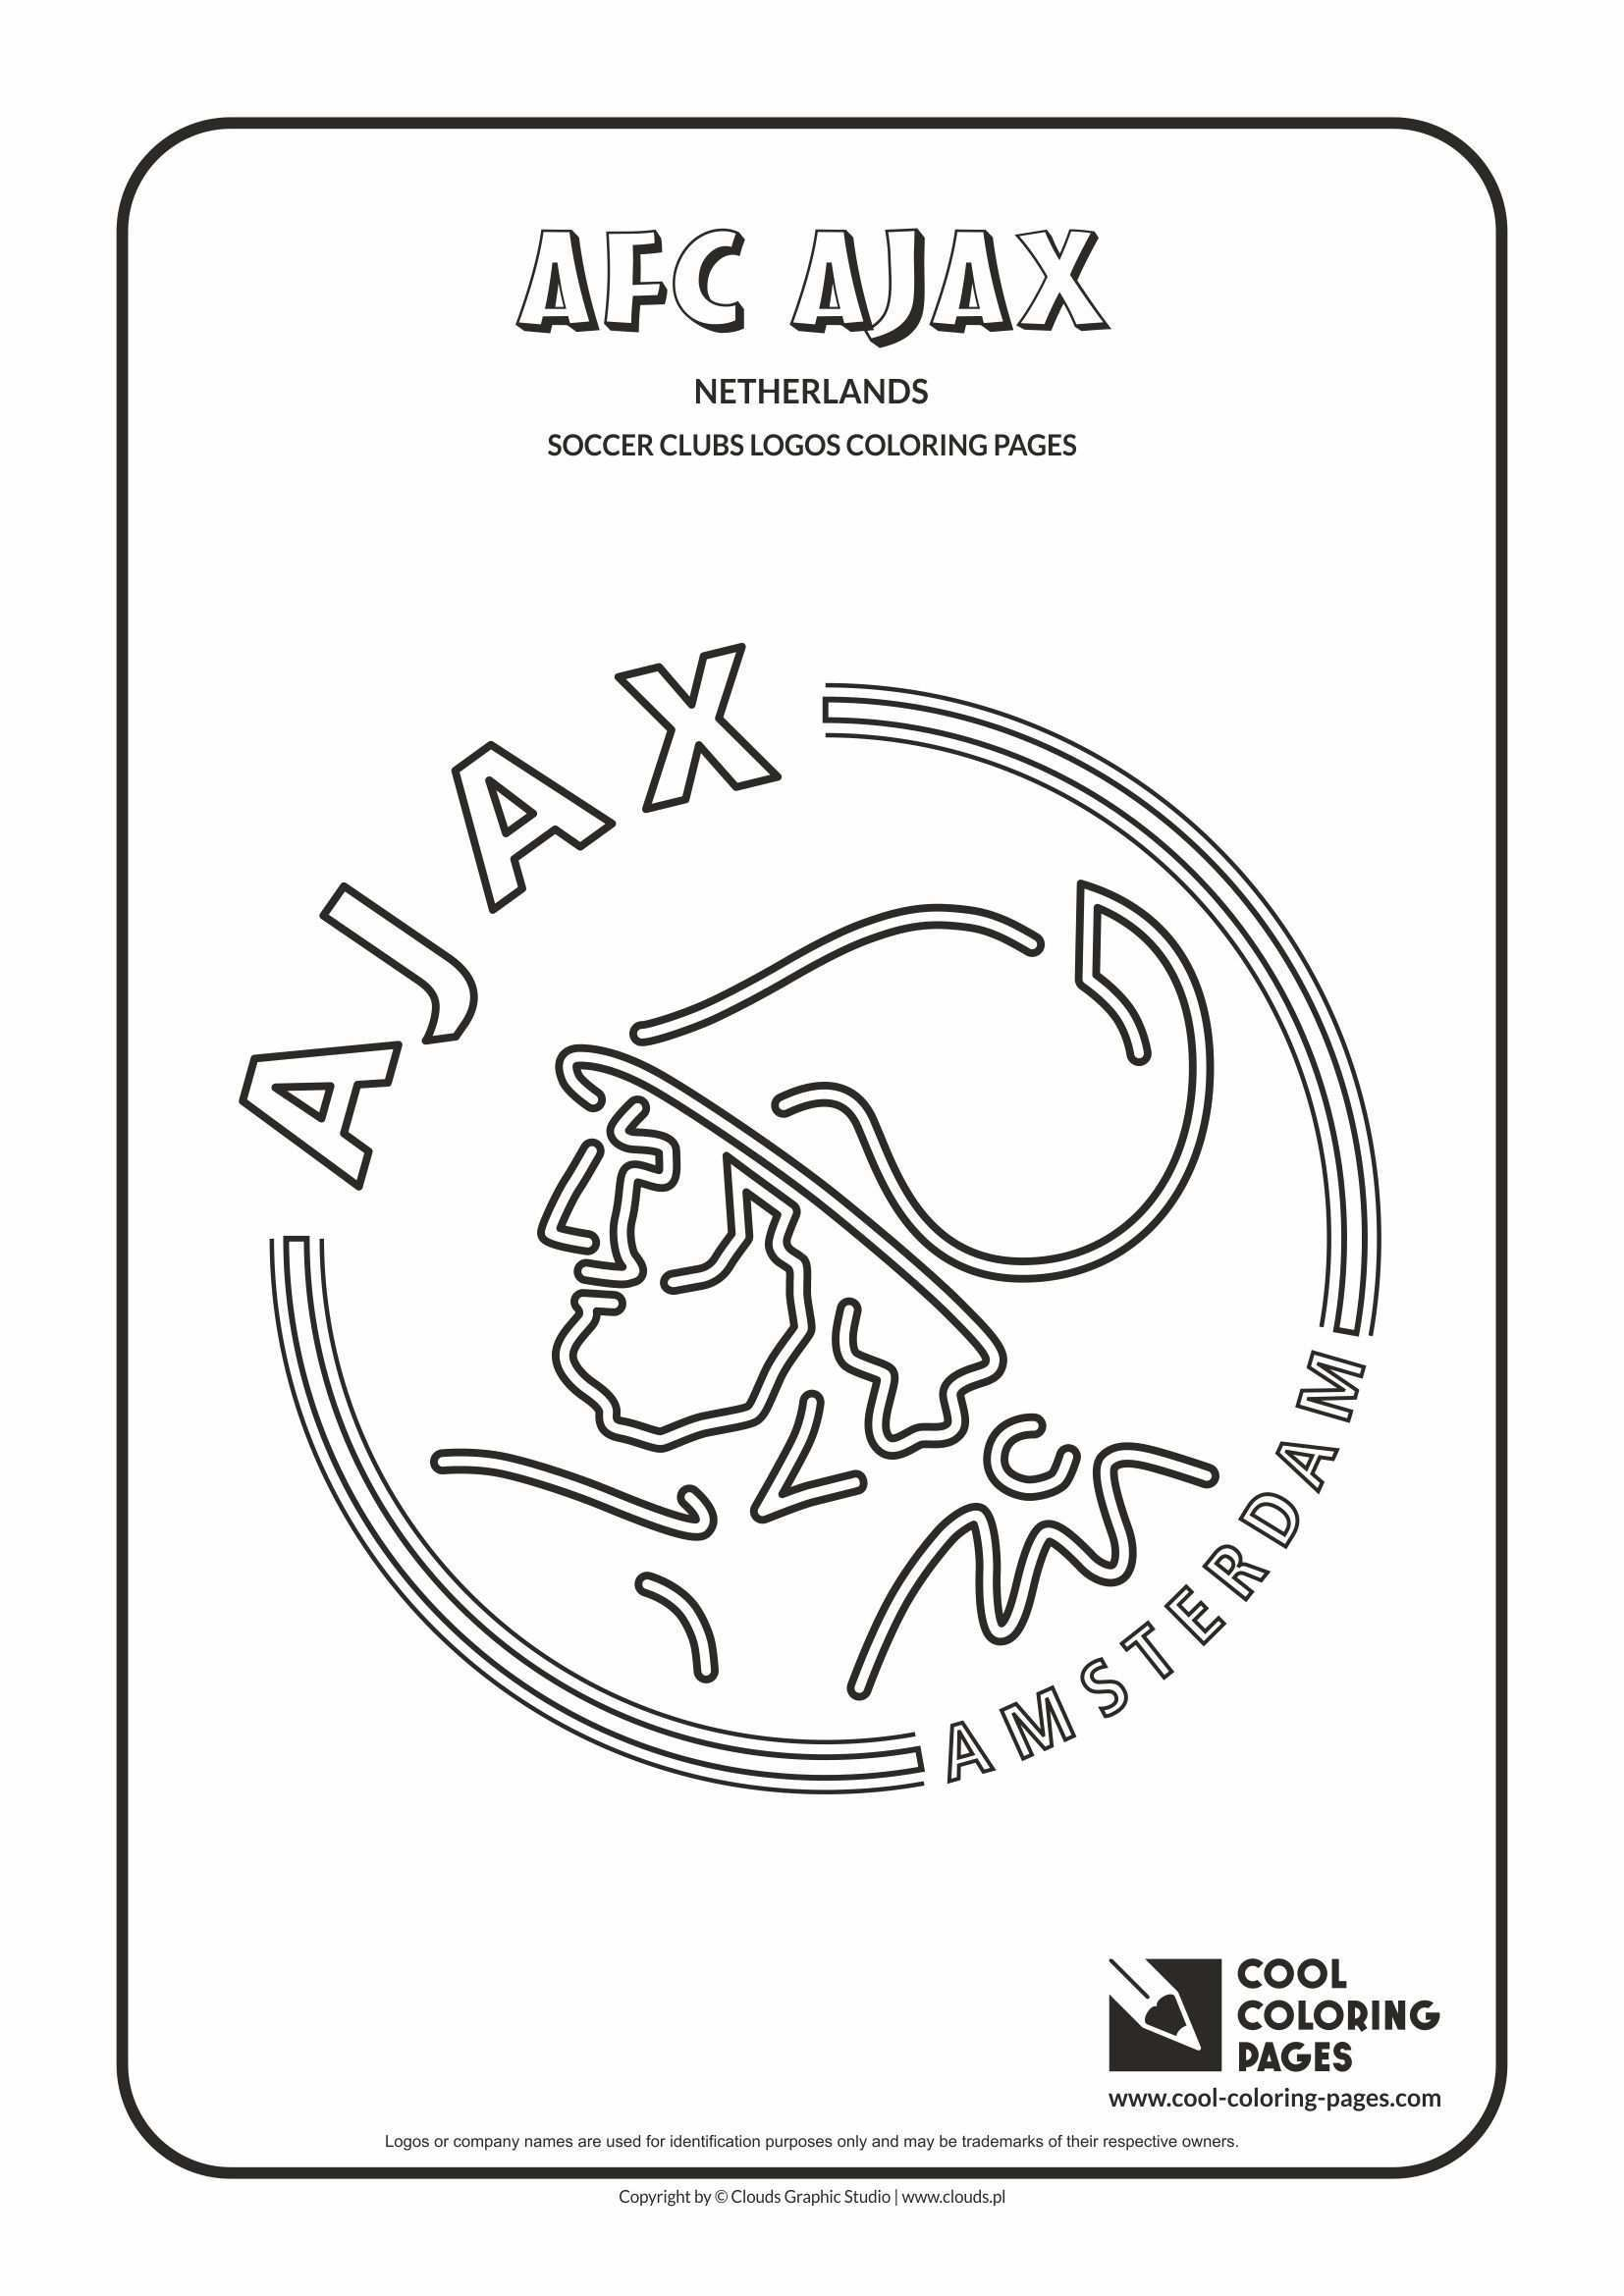 Afc Ajax Amsterdam Logo Coloring Page Cool Coloring Pages Coloring Pages Logos